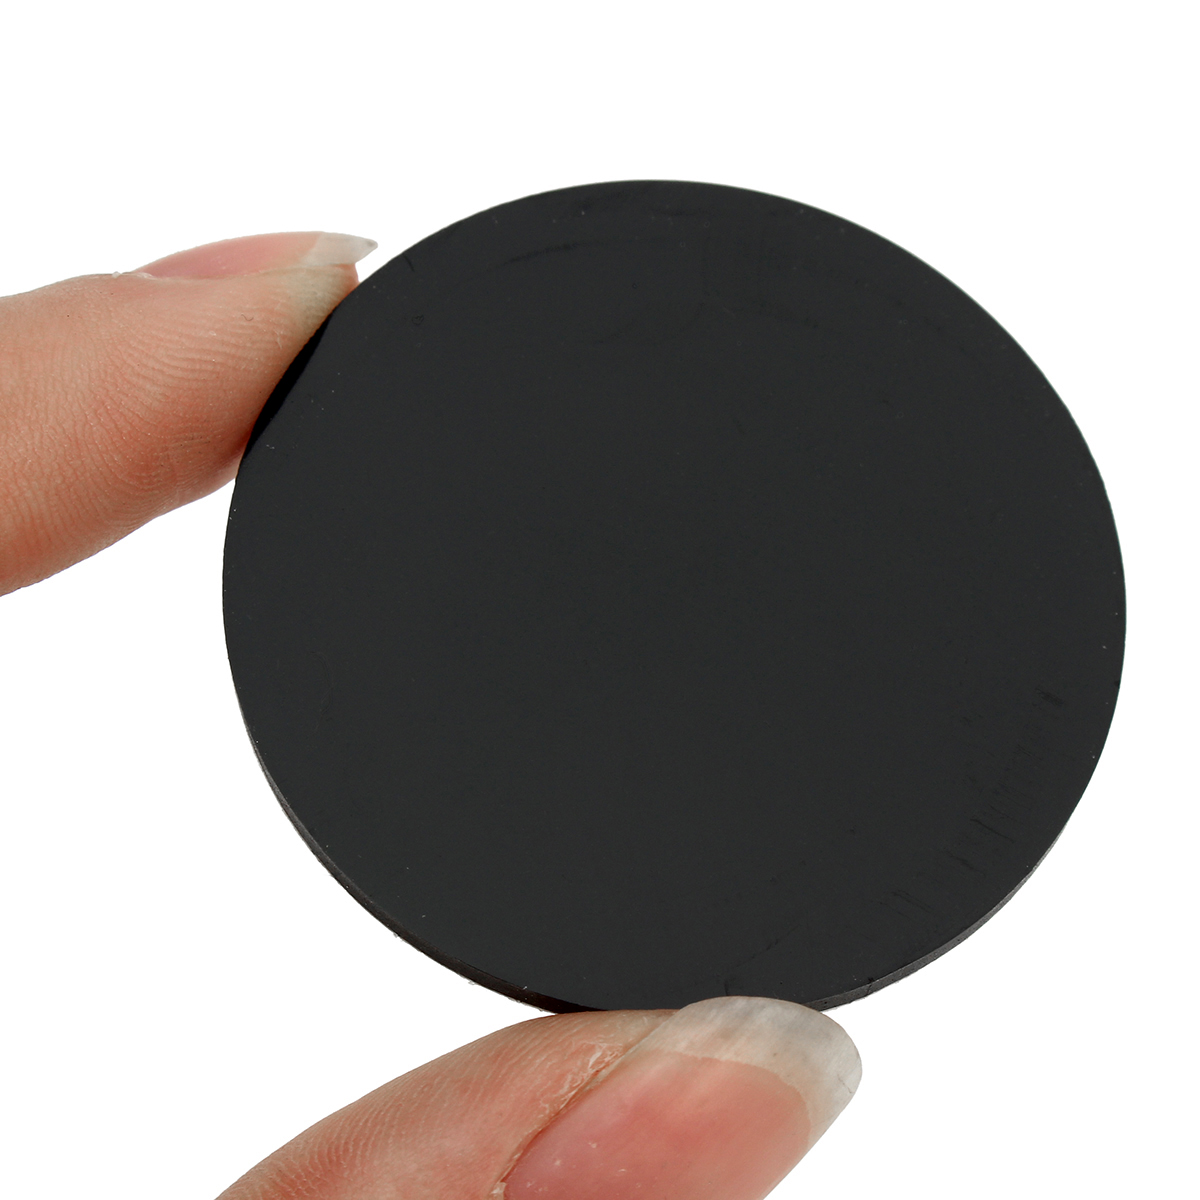 20Pcs 40mm Round Black Silicone Oval Model Bases Support for Wargames Table Games Warhammer 40K